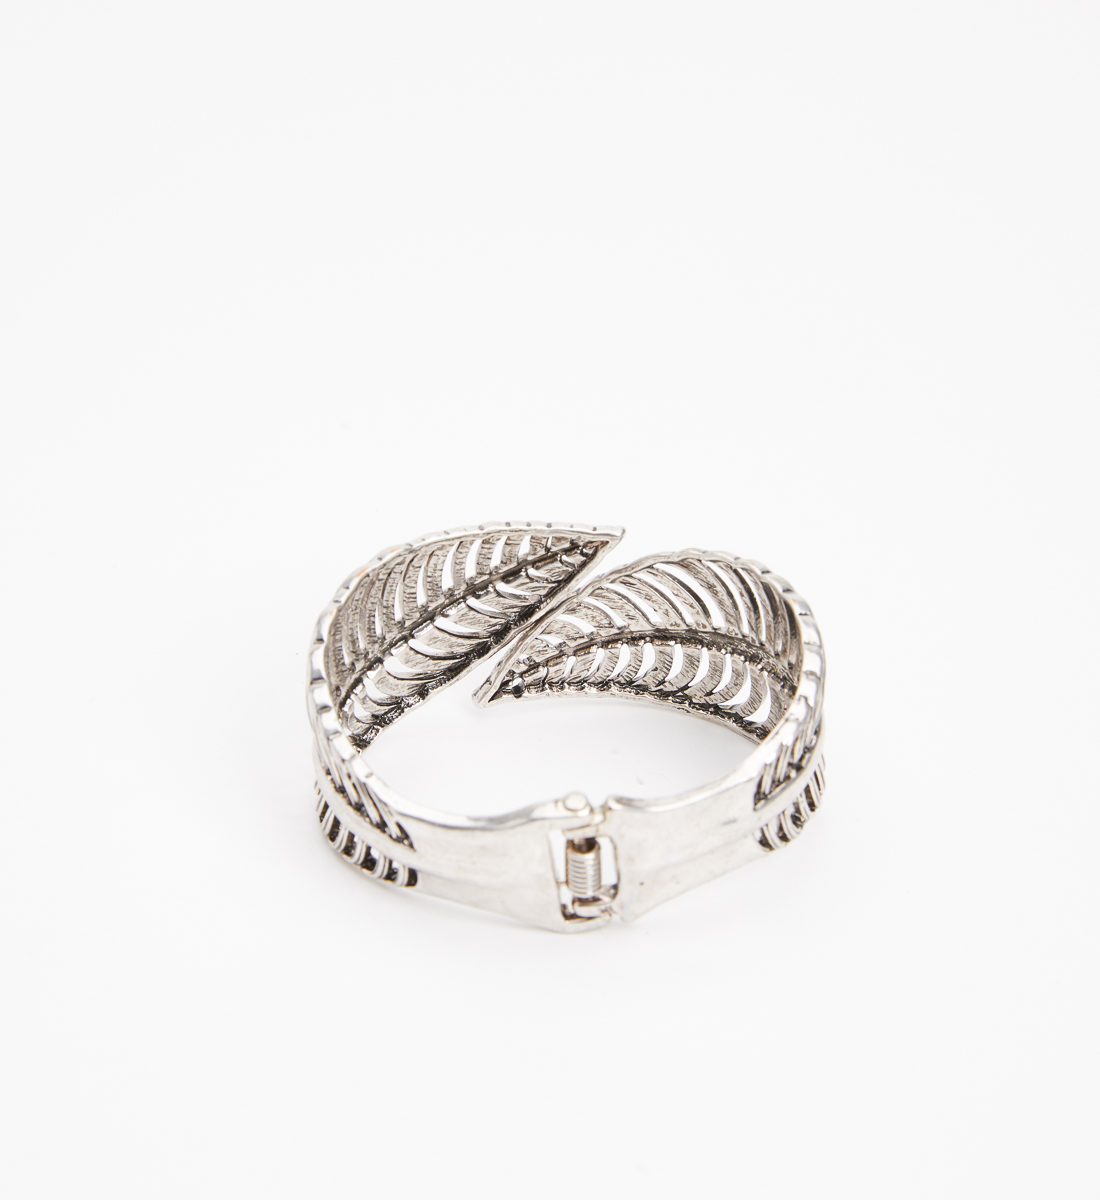 Silver-Tone Feather Cuff Bracelet, , hi-res